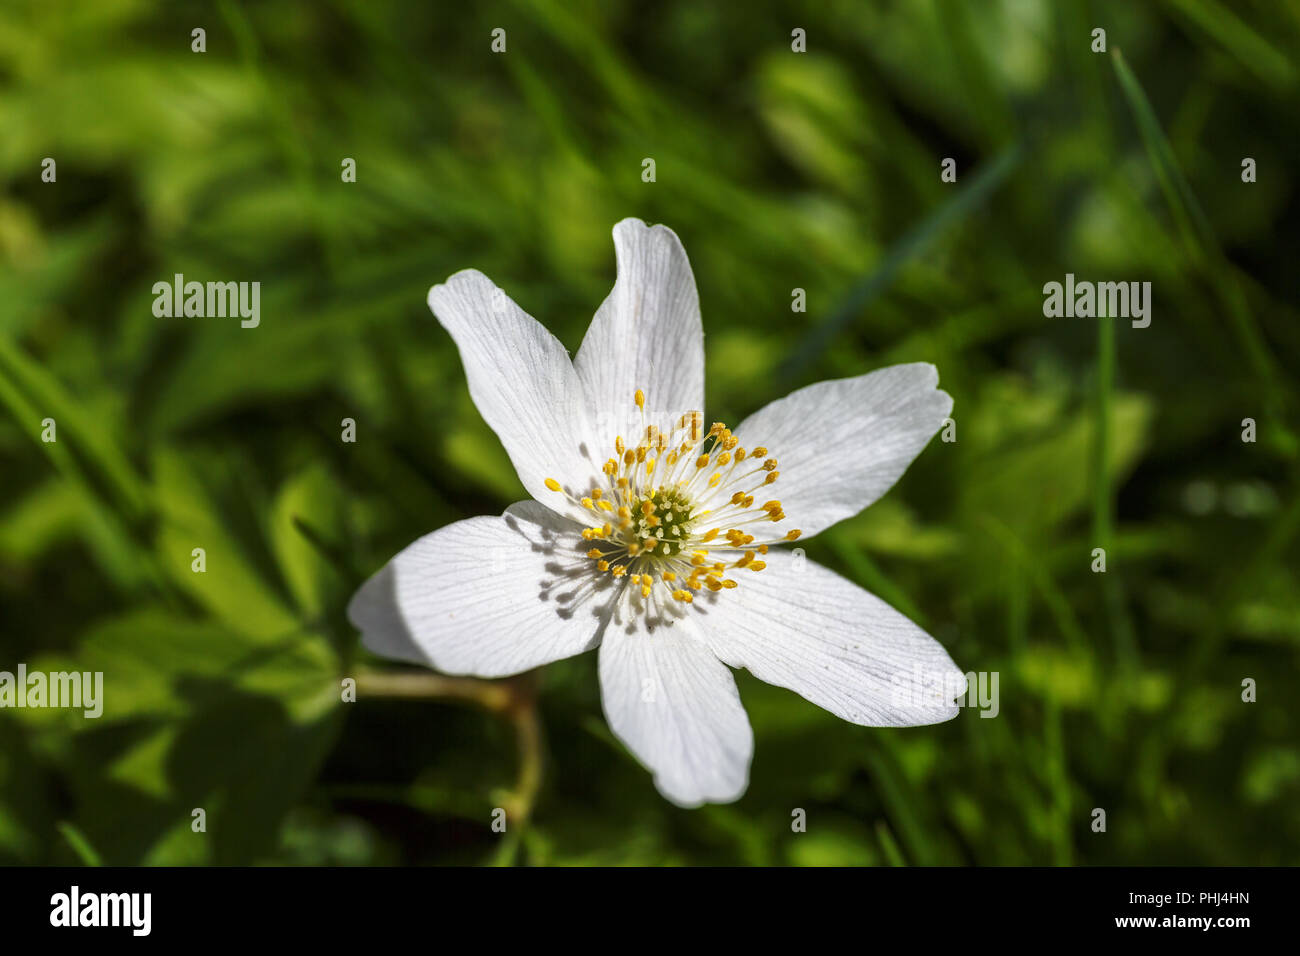 Wood anemone an early spring flower - Stock Image